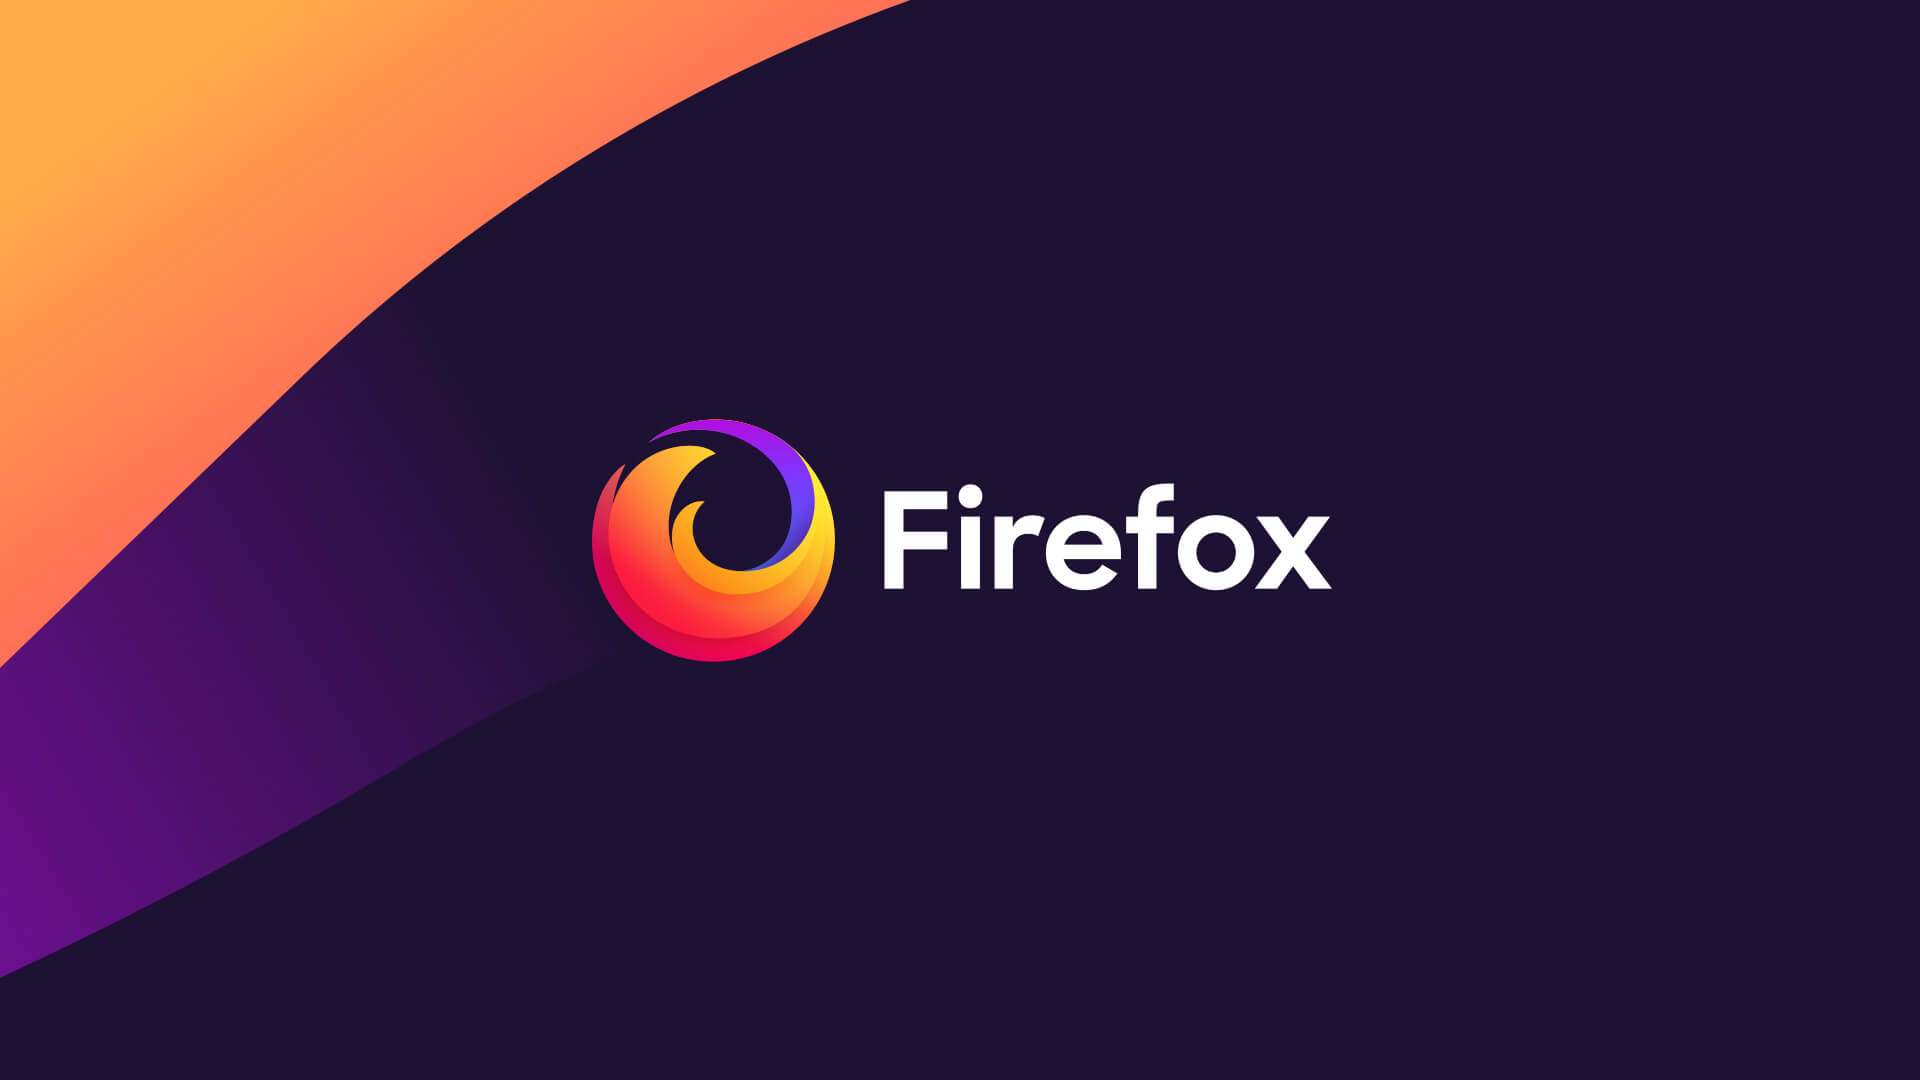 deploy firefox using sccm ftimg